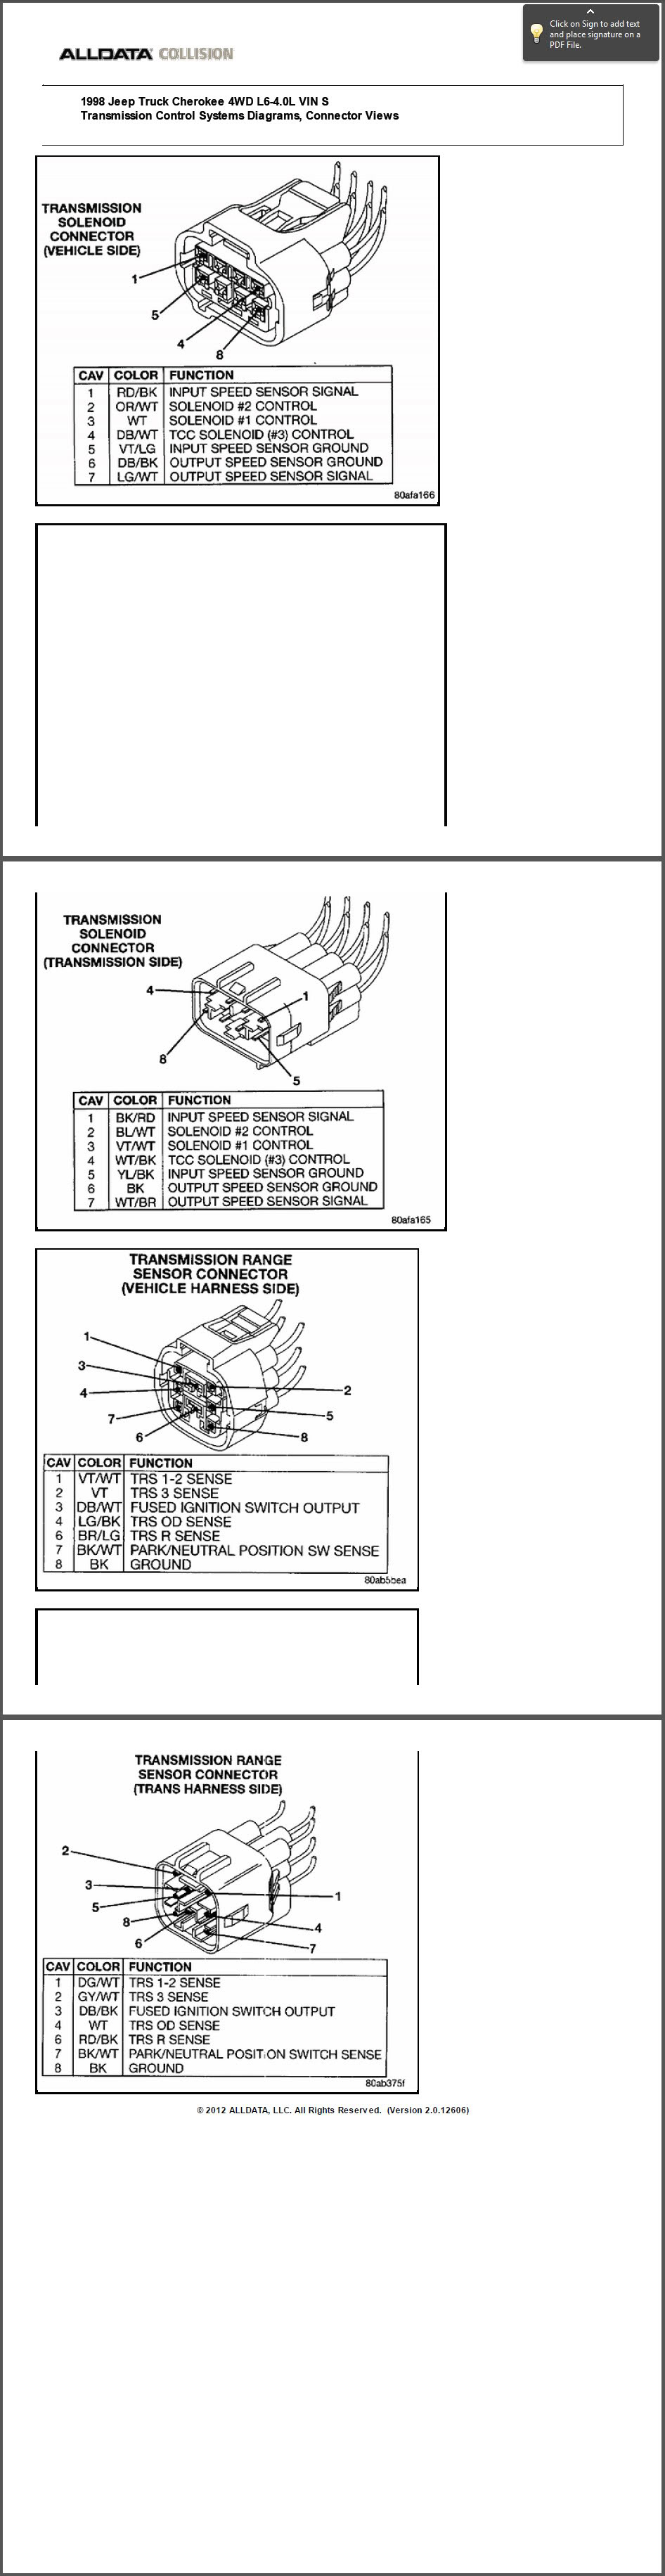 hight resolution of name transmissioncontrolsystems diagramsconnectorviews jpg views 511 size 342 4 kb